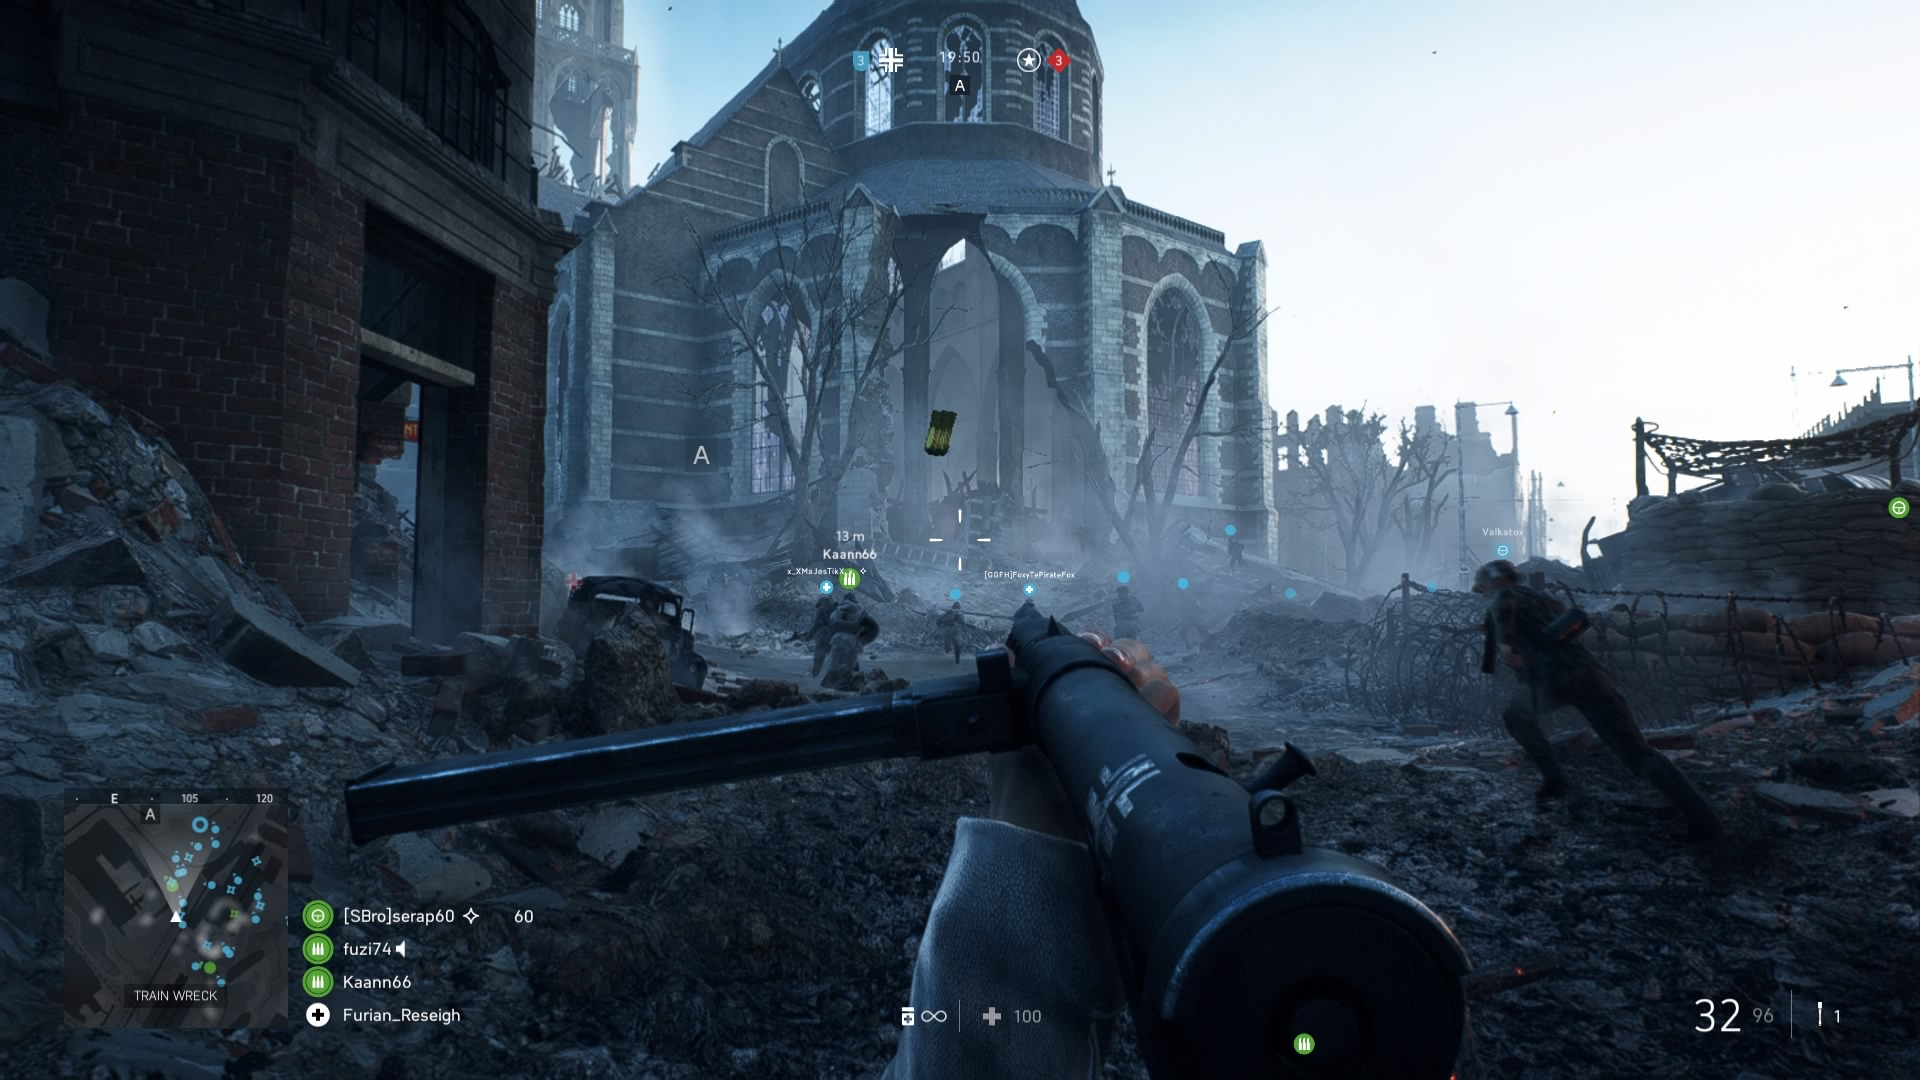 Battlefield review: improved incomplete multiplayer J39vRWfsXH5otnaQXifF